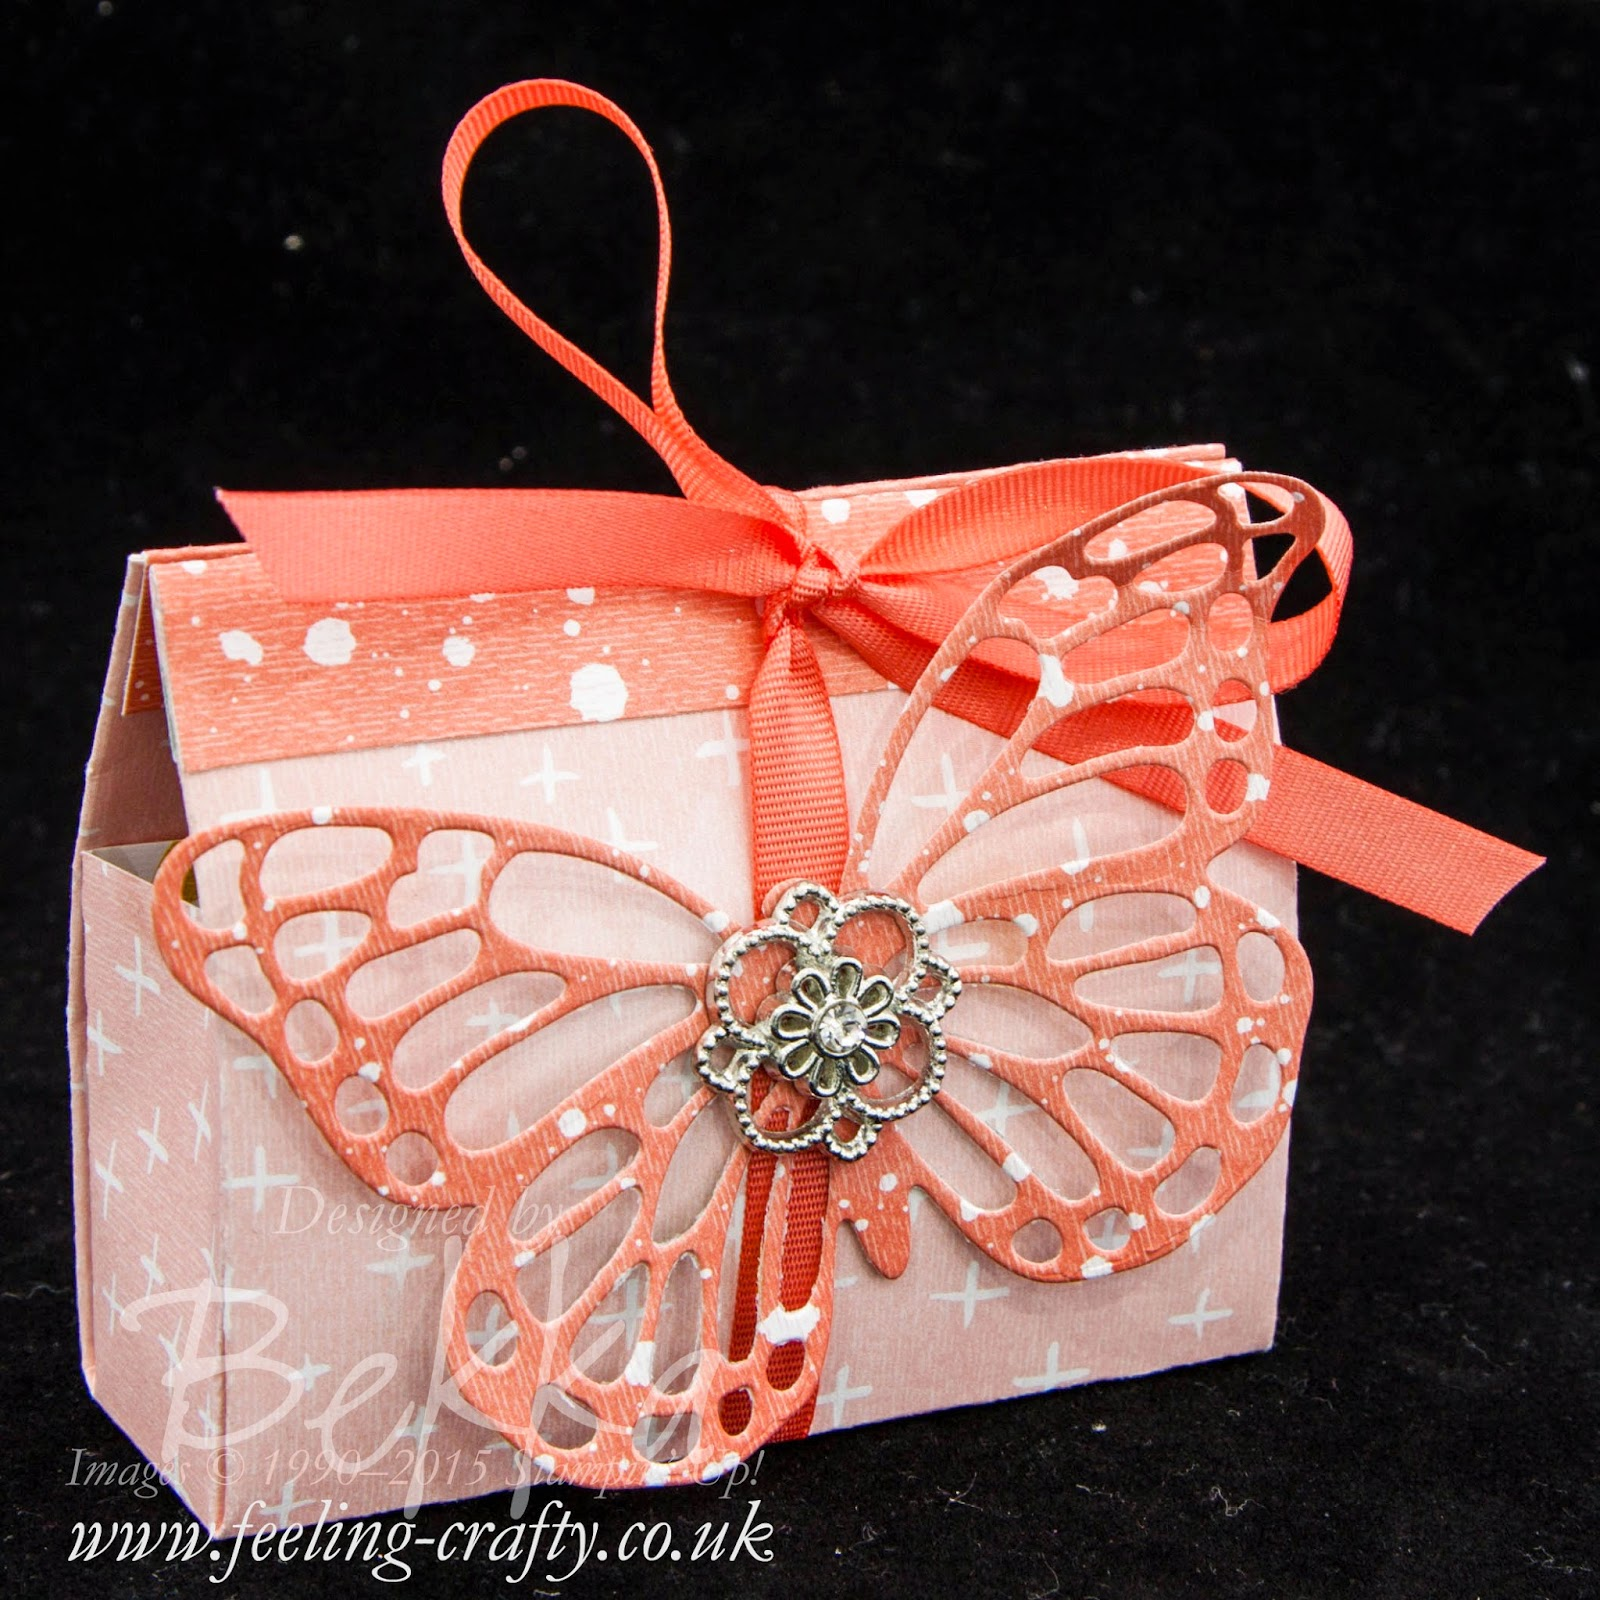 How To Make A Cute Easter or Spring Treat Bag - Free Tutorial Here